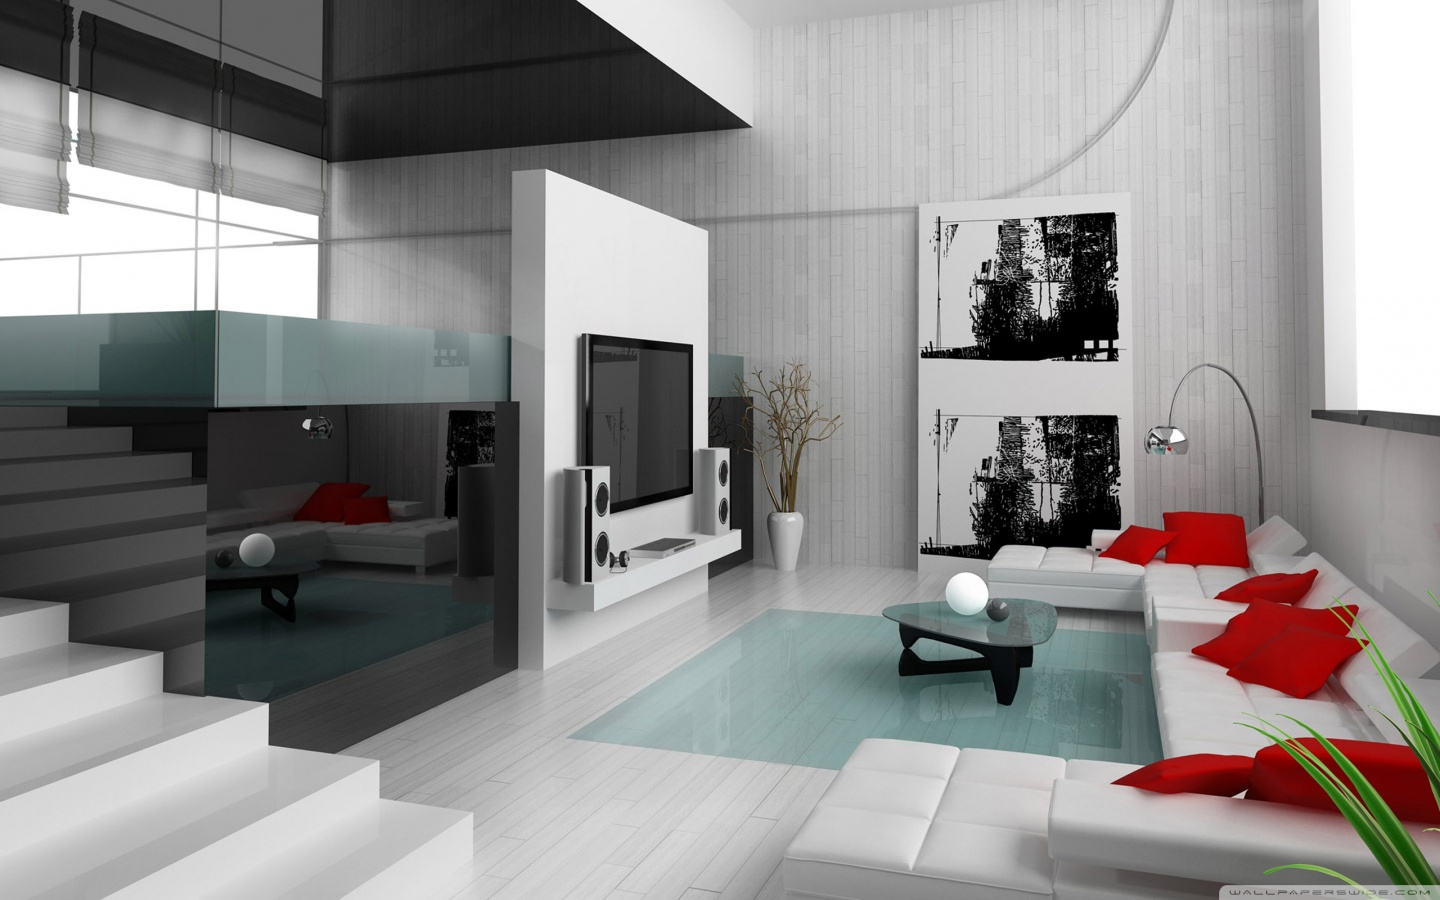 Minimalist interior design imagination art architecture for Minimalist design